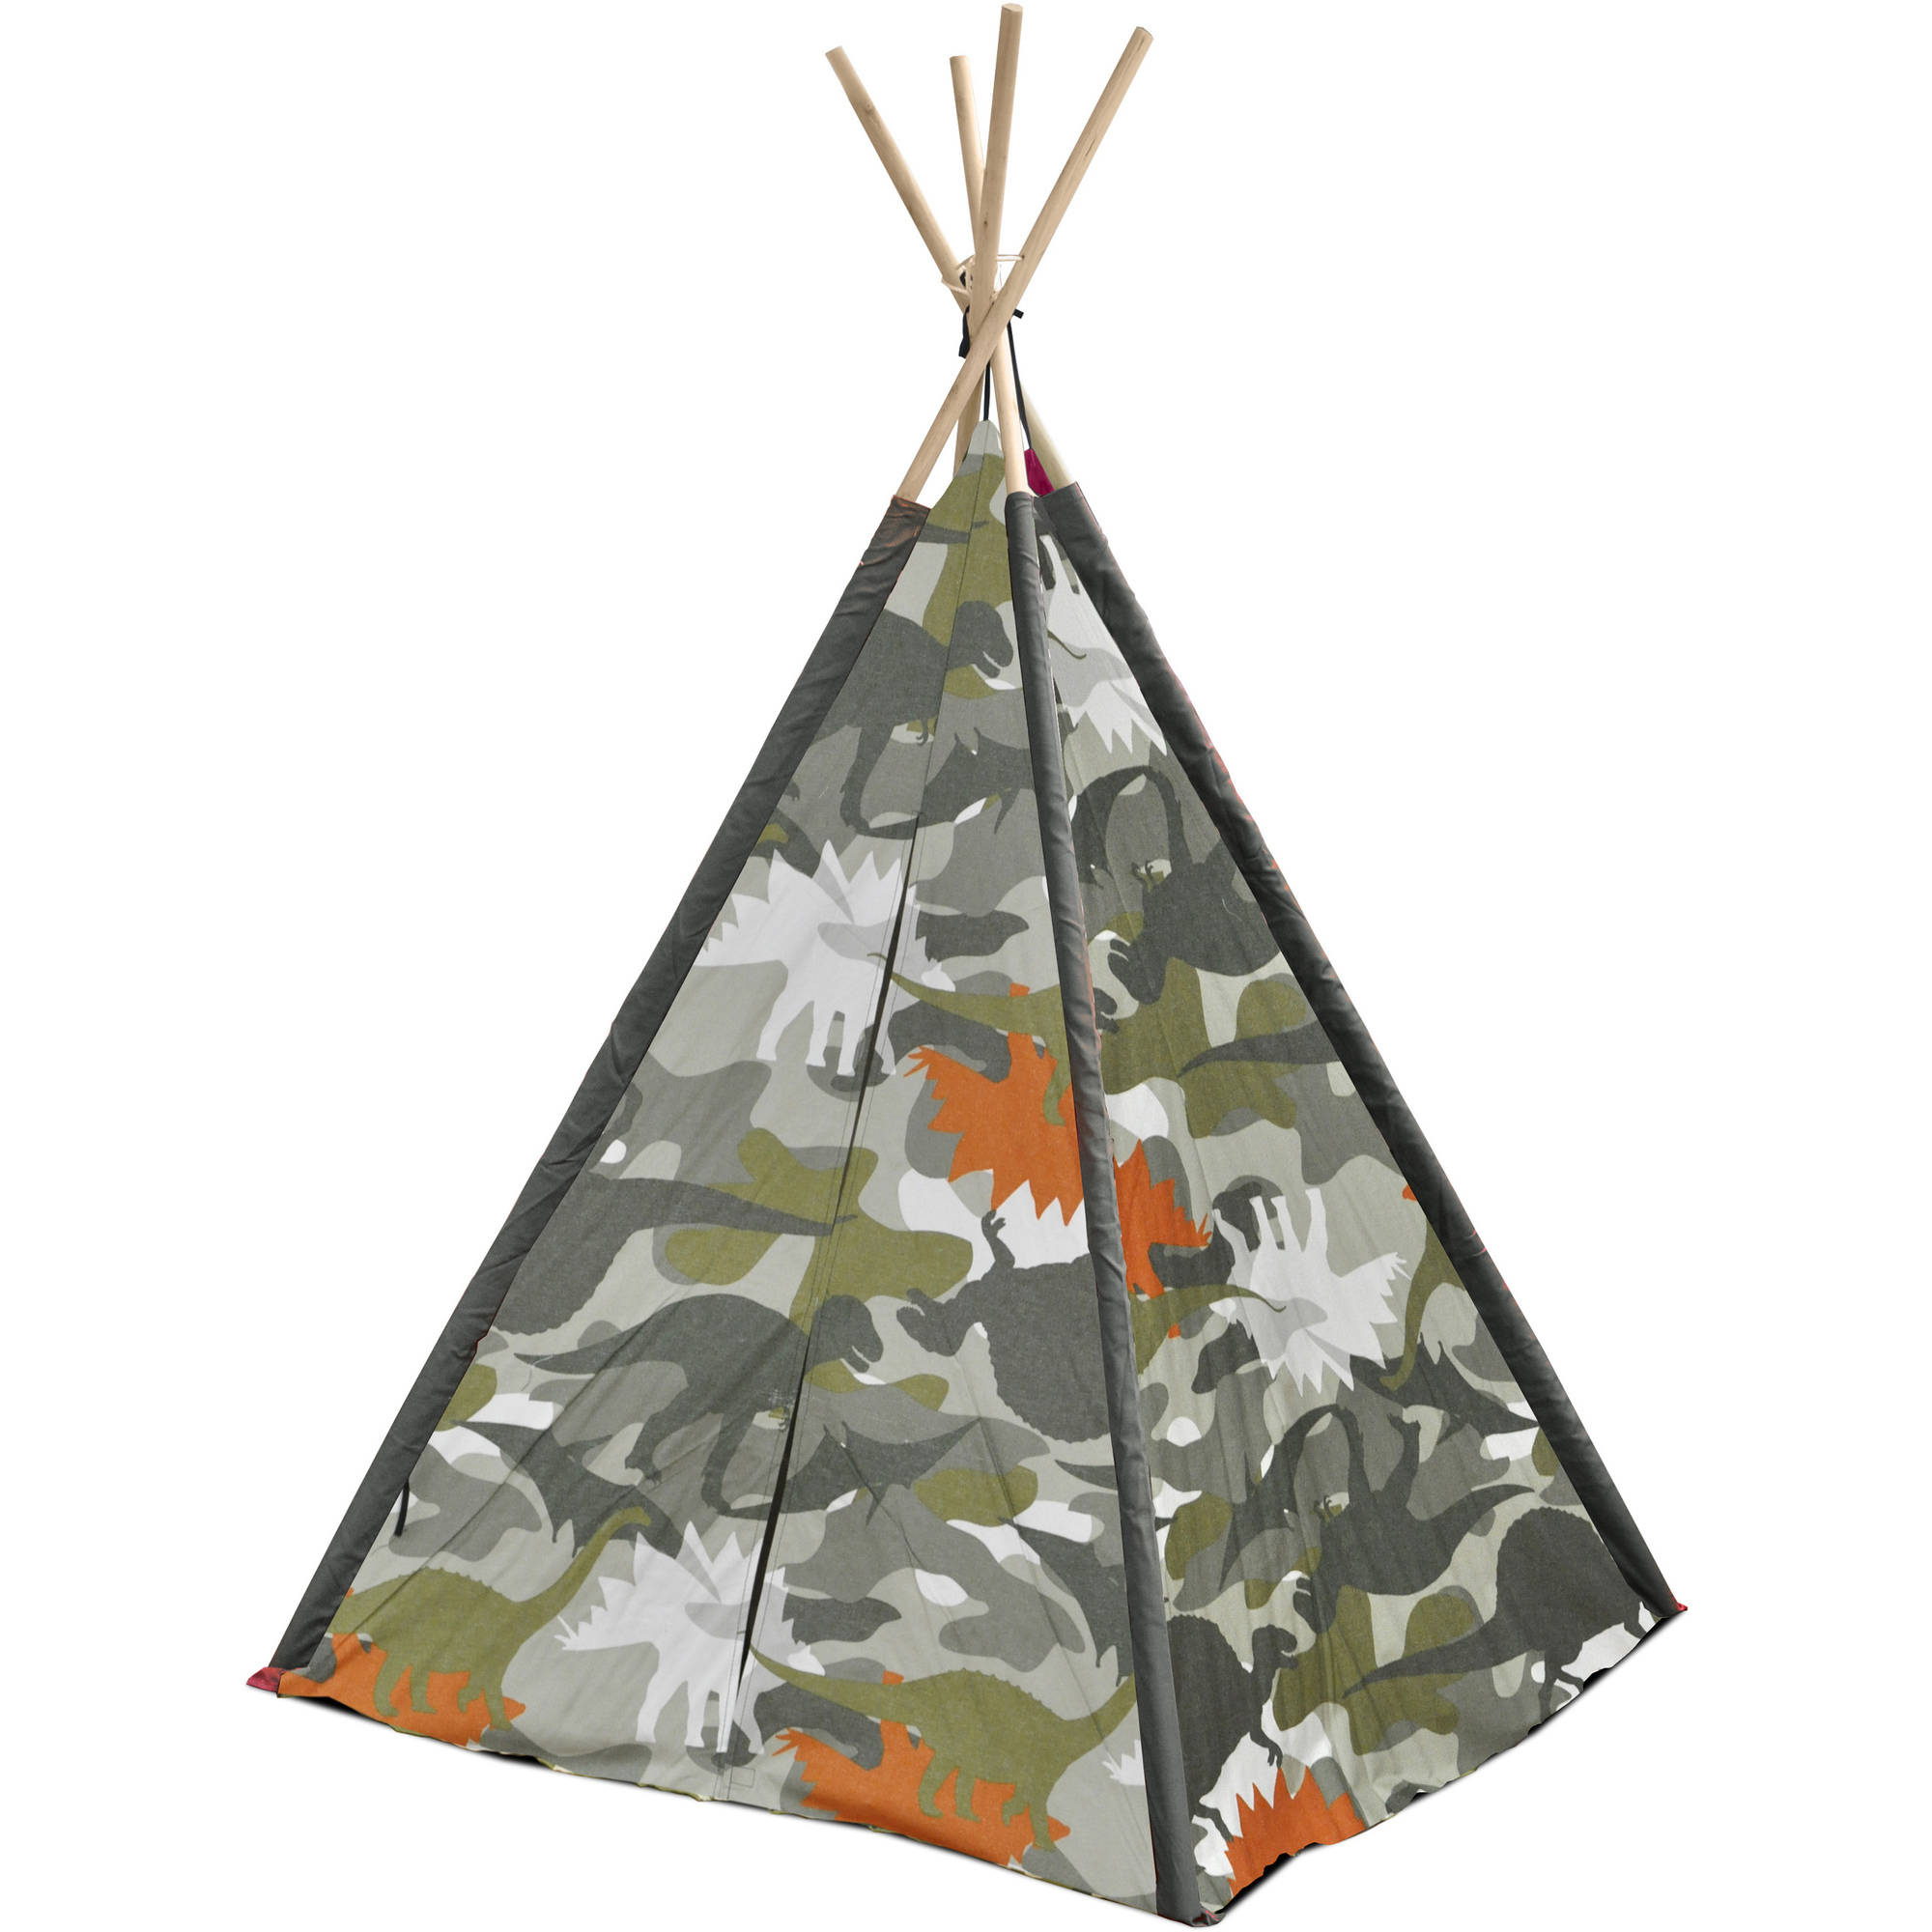 American Kids Tee-Pee Play Tent, Available in Multiple Prints